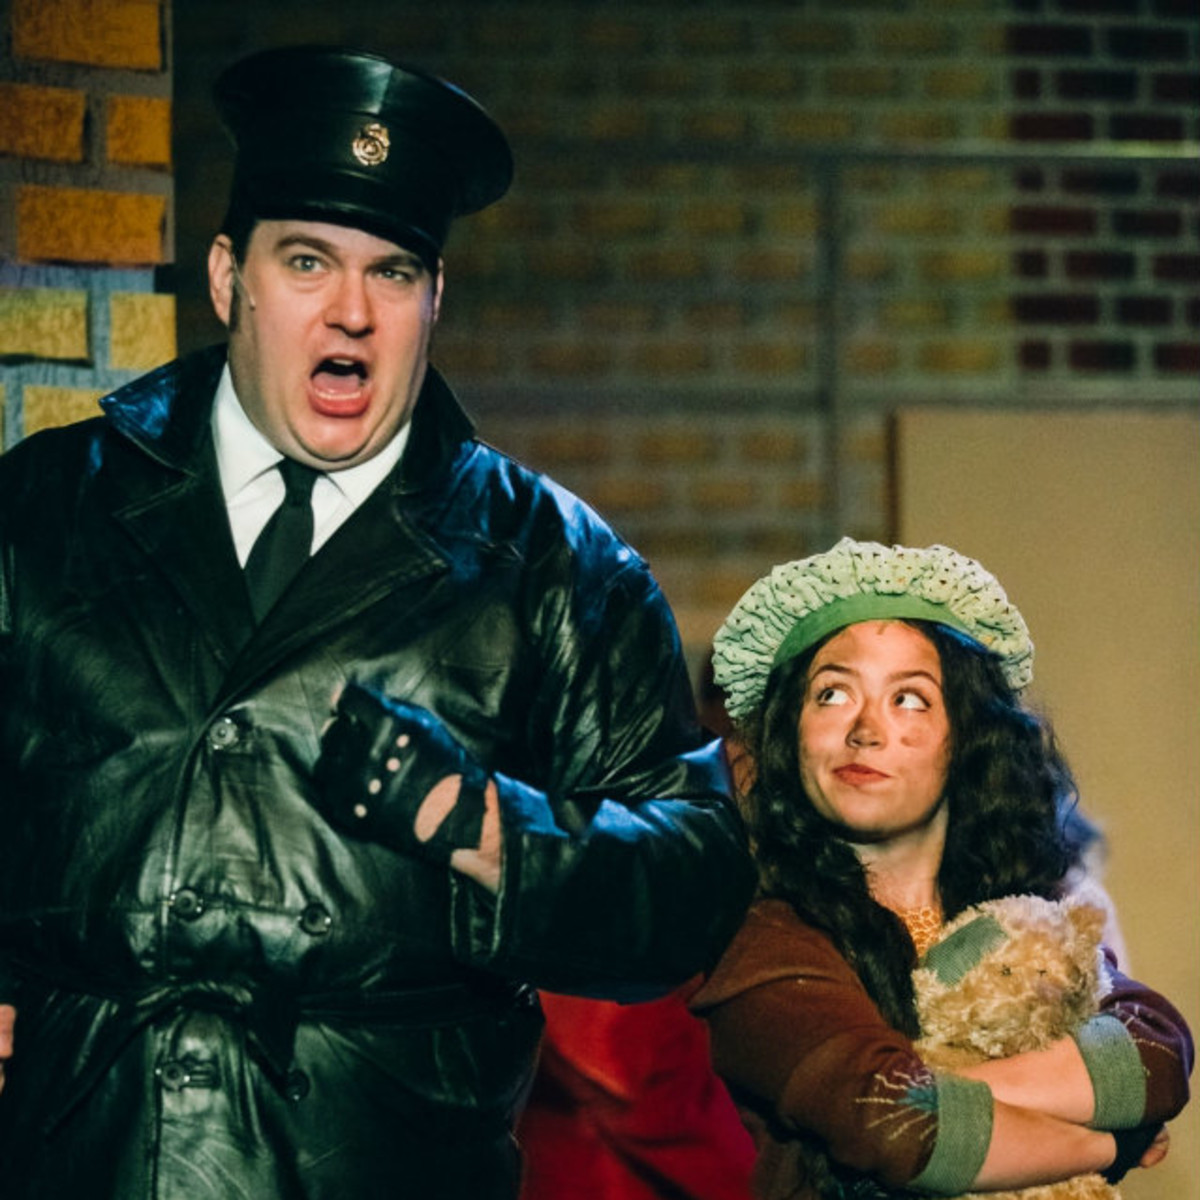 Urinetown at Theatre Arlington